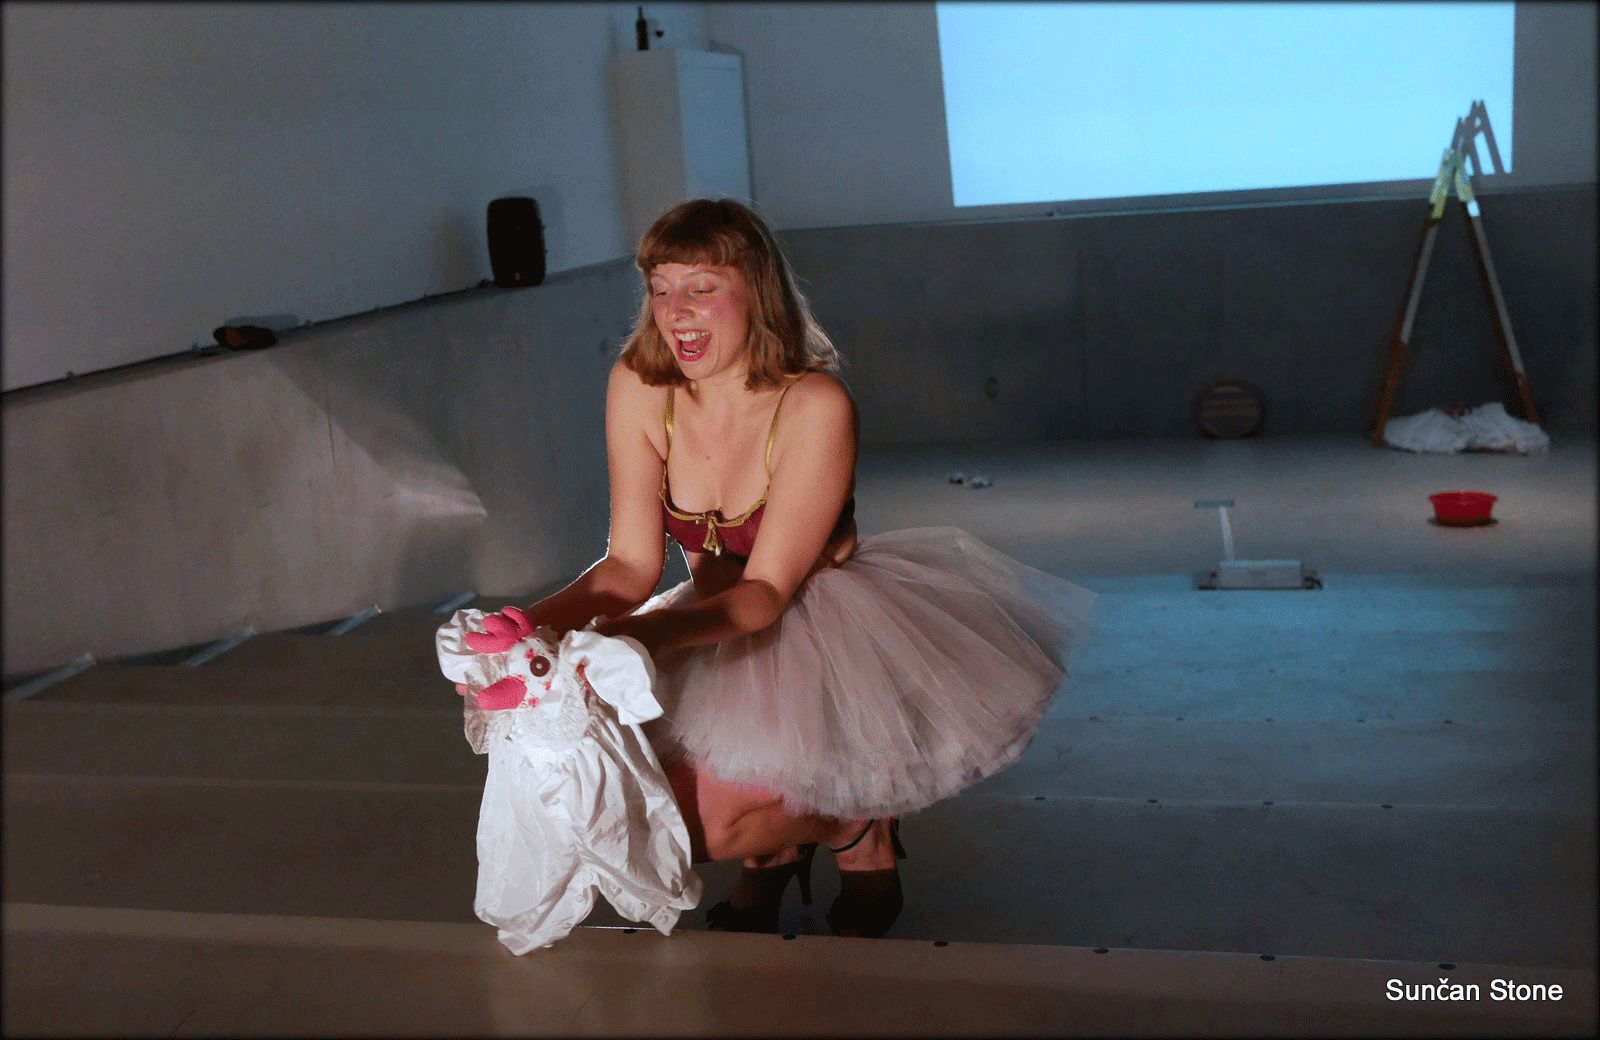 perf_nightlife_moderna_S_babylyn1_-with-baby-singing-laugh-closeup_2015.png